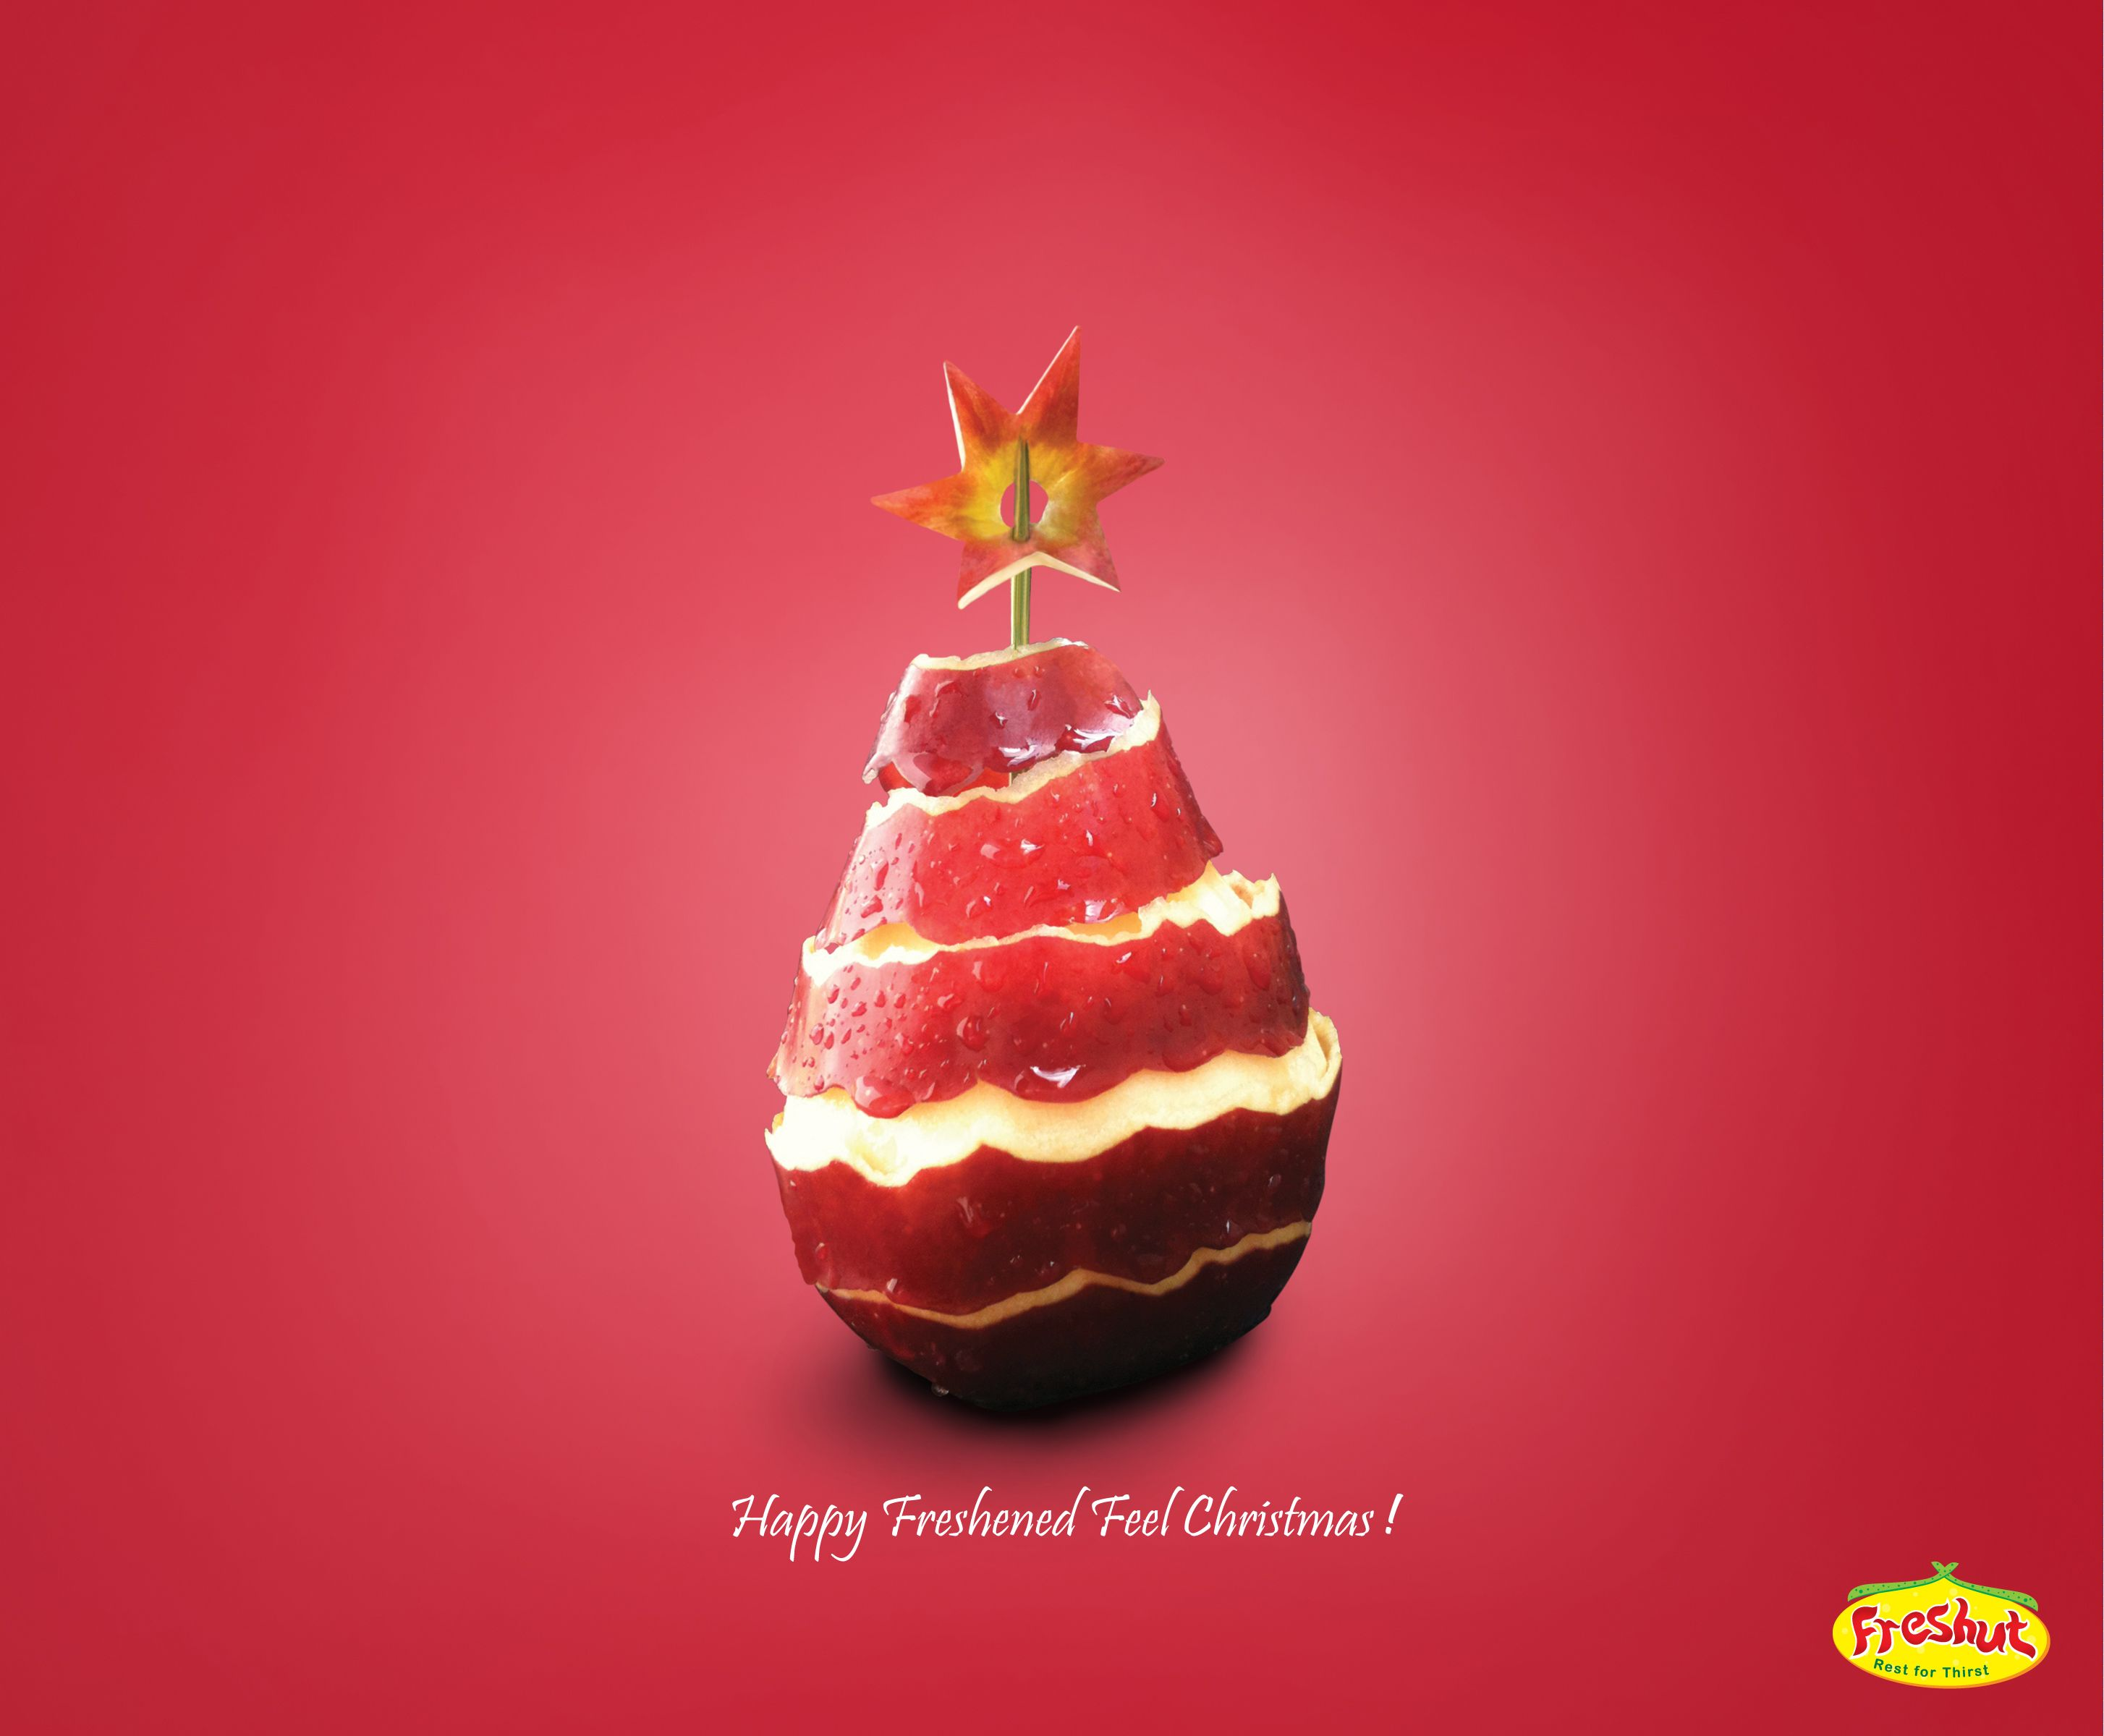 freshut-fresh-juice-happy-freshened-feel-christmas-print-358301-adeevee.jpg (2908×2400)